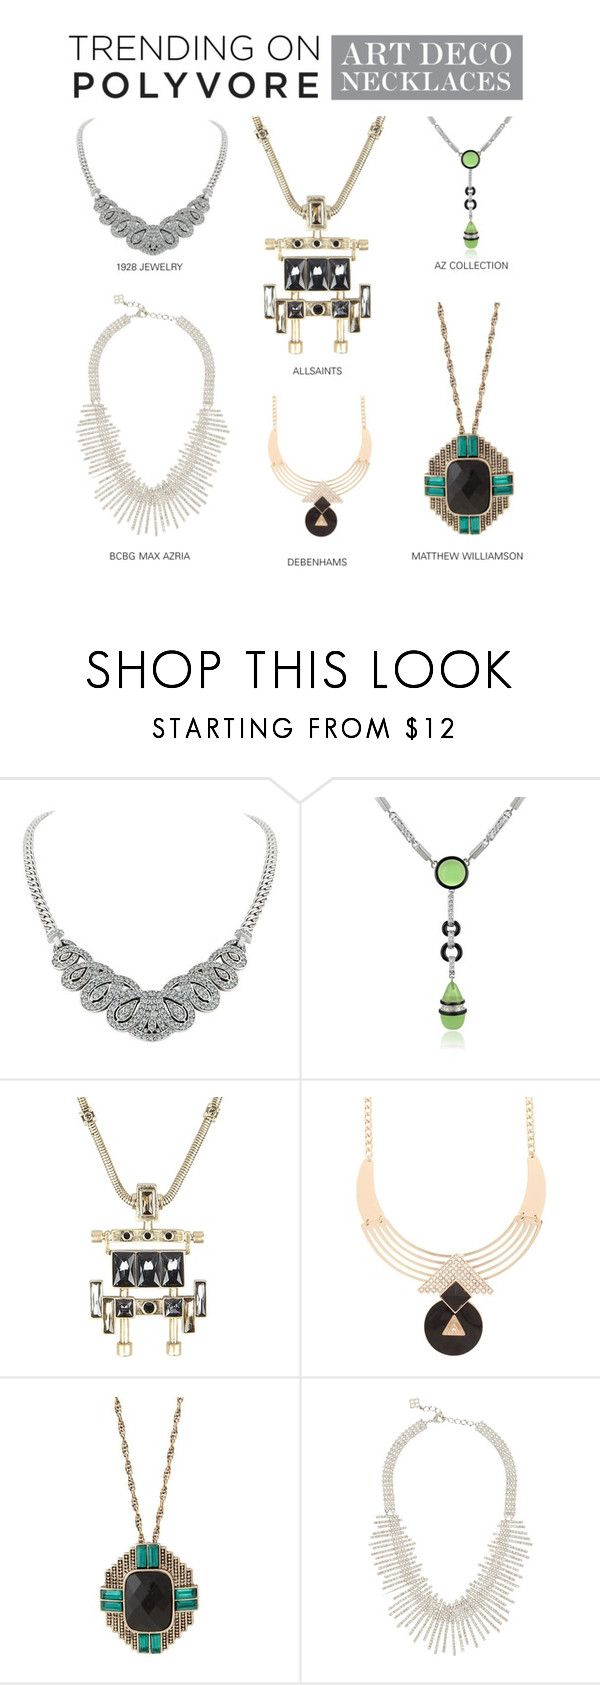 """Trending on Polyvore: Art Deco Necklaces"" by polyvore-editorial ❤ liked on Polyvore featuring 1928, AZ Collection, AllSaints, MOOD, Matthew Williamson, BCBGMAXAZRIA, modern, NowTrending, art deco and art deco jewelry"